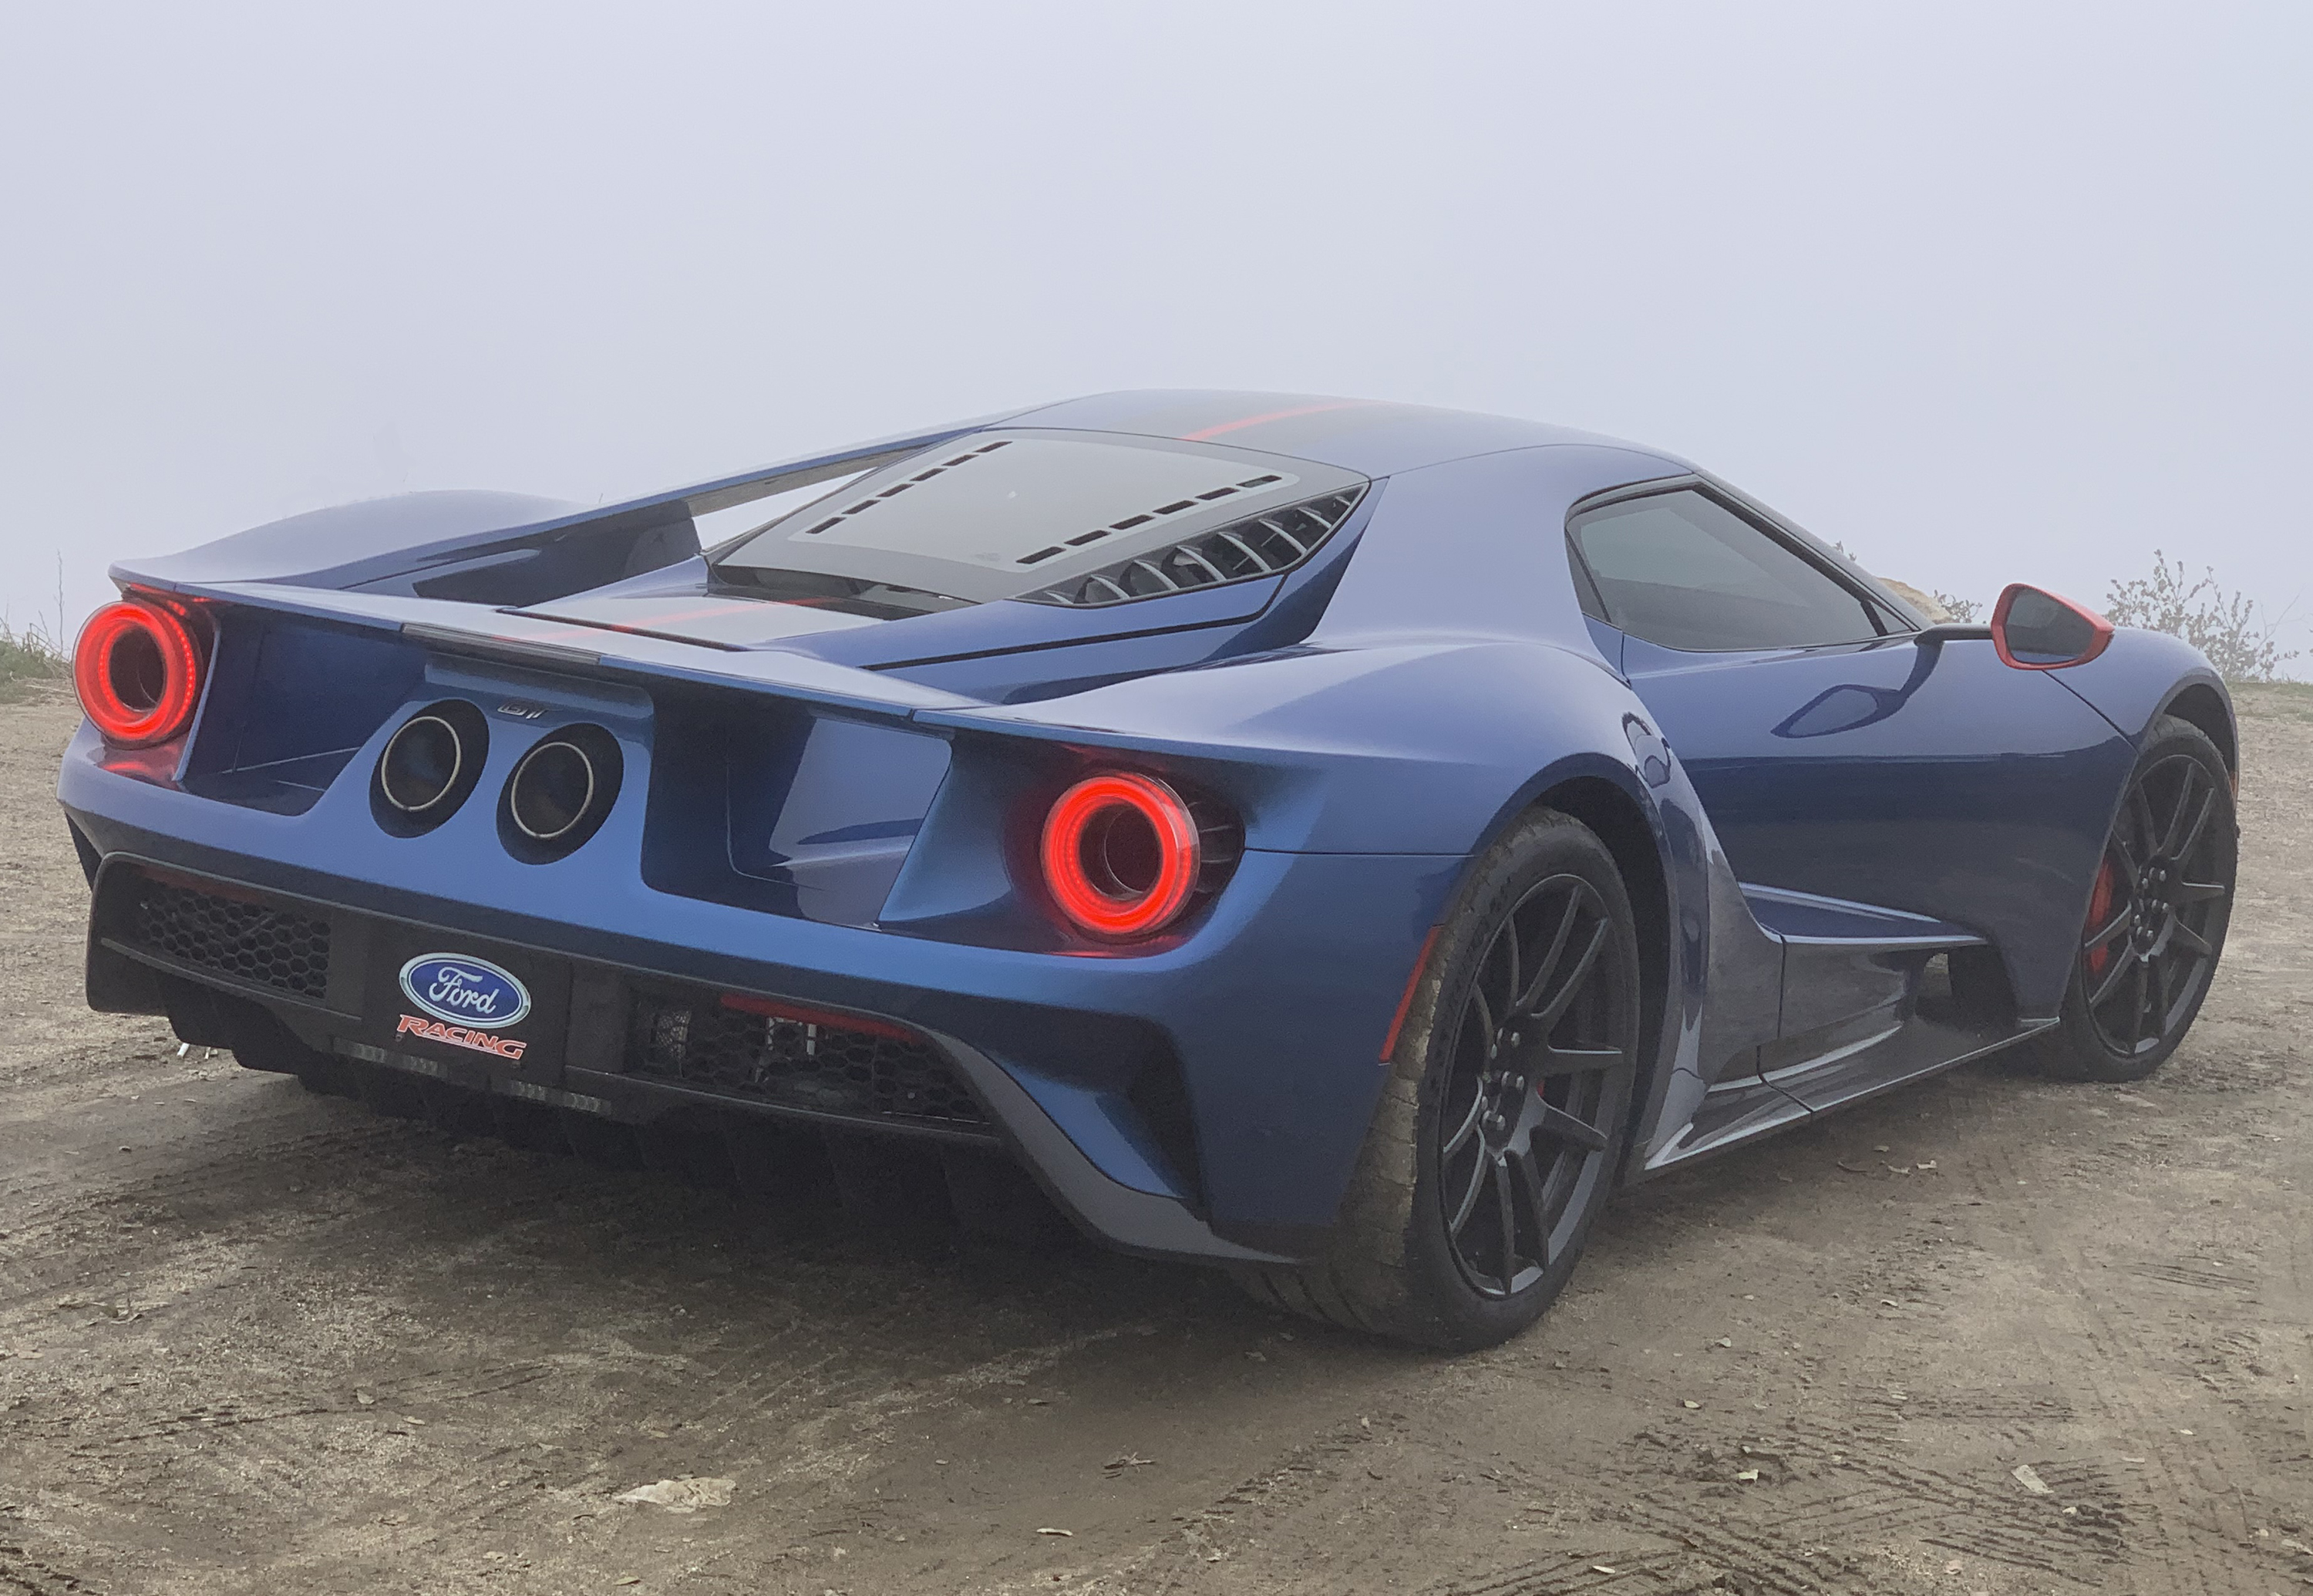 2019 Ford GT Carbon Series Palomar Rear Fog